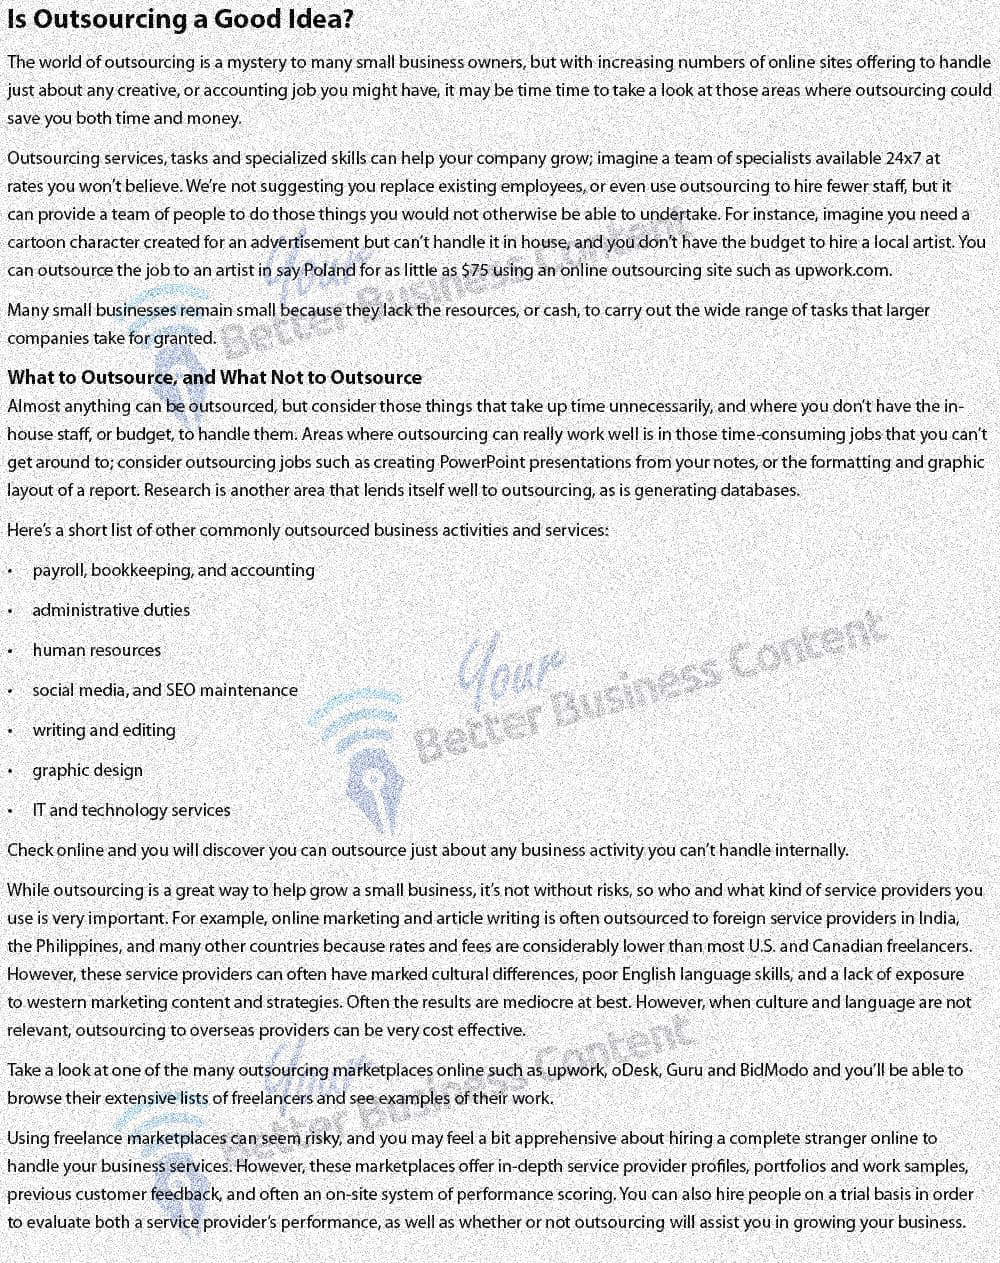 hr-10-16-008-is_outsourcing_a_good_idea